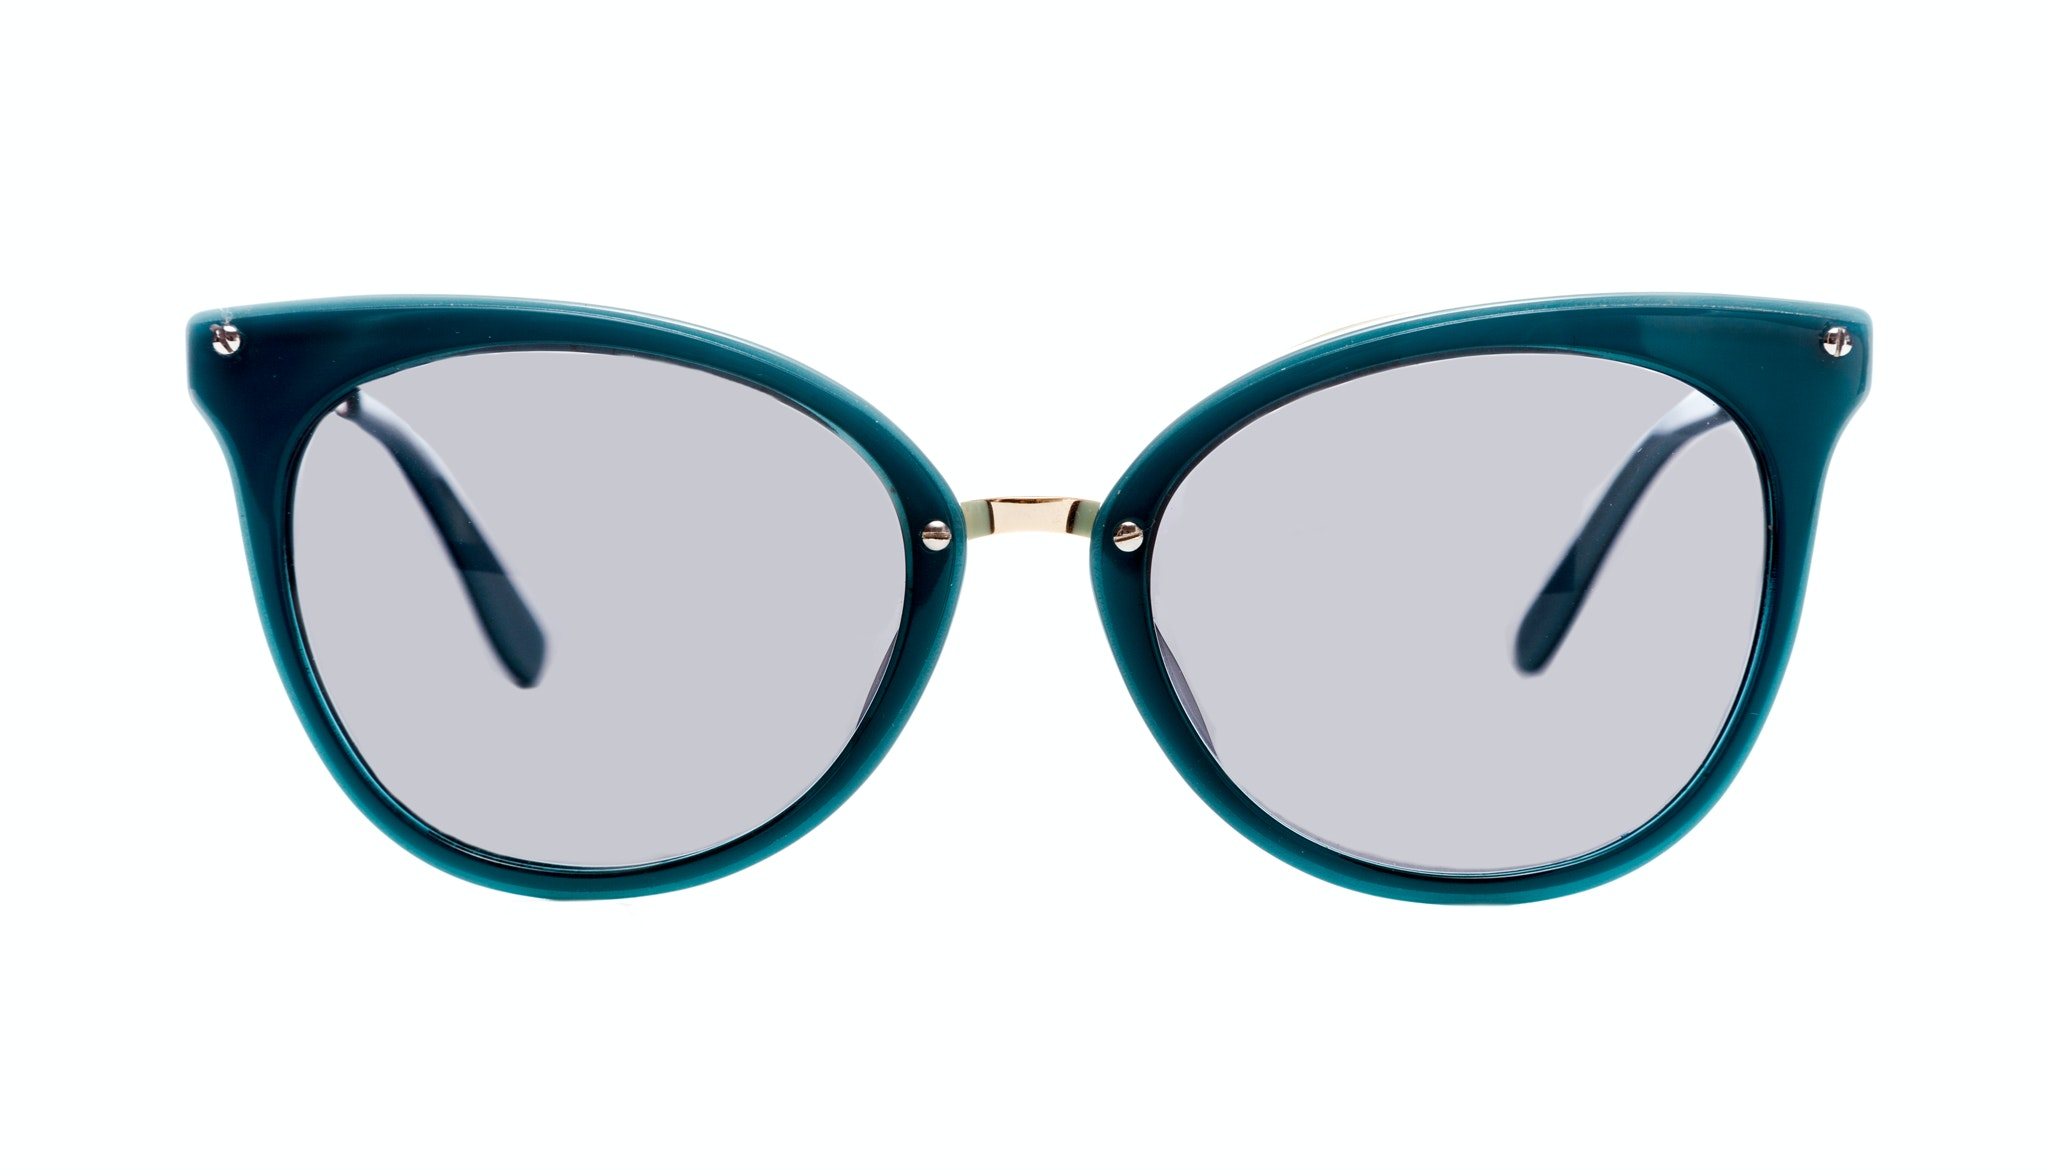 Affordable Fashion Glasses Cat Eye Sunglasses Women BFF Aquamarine Front